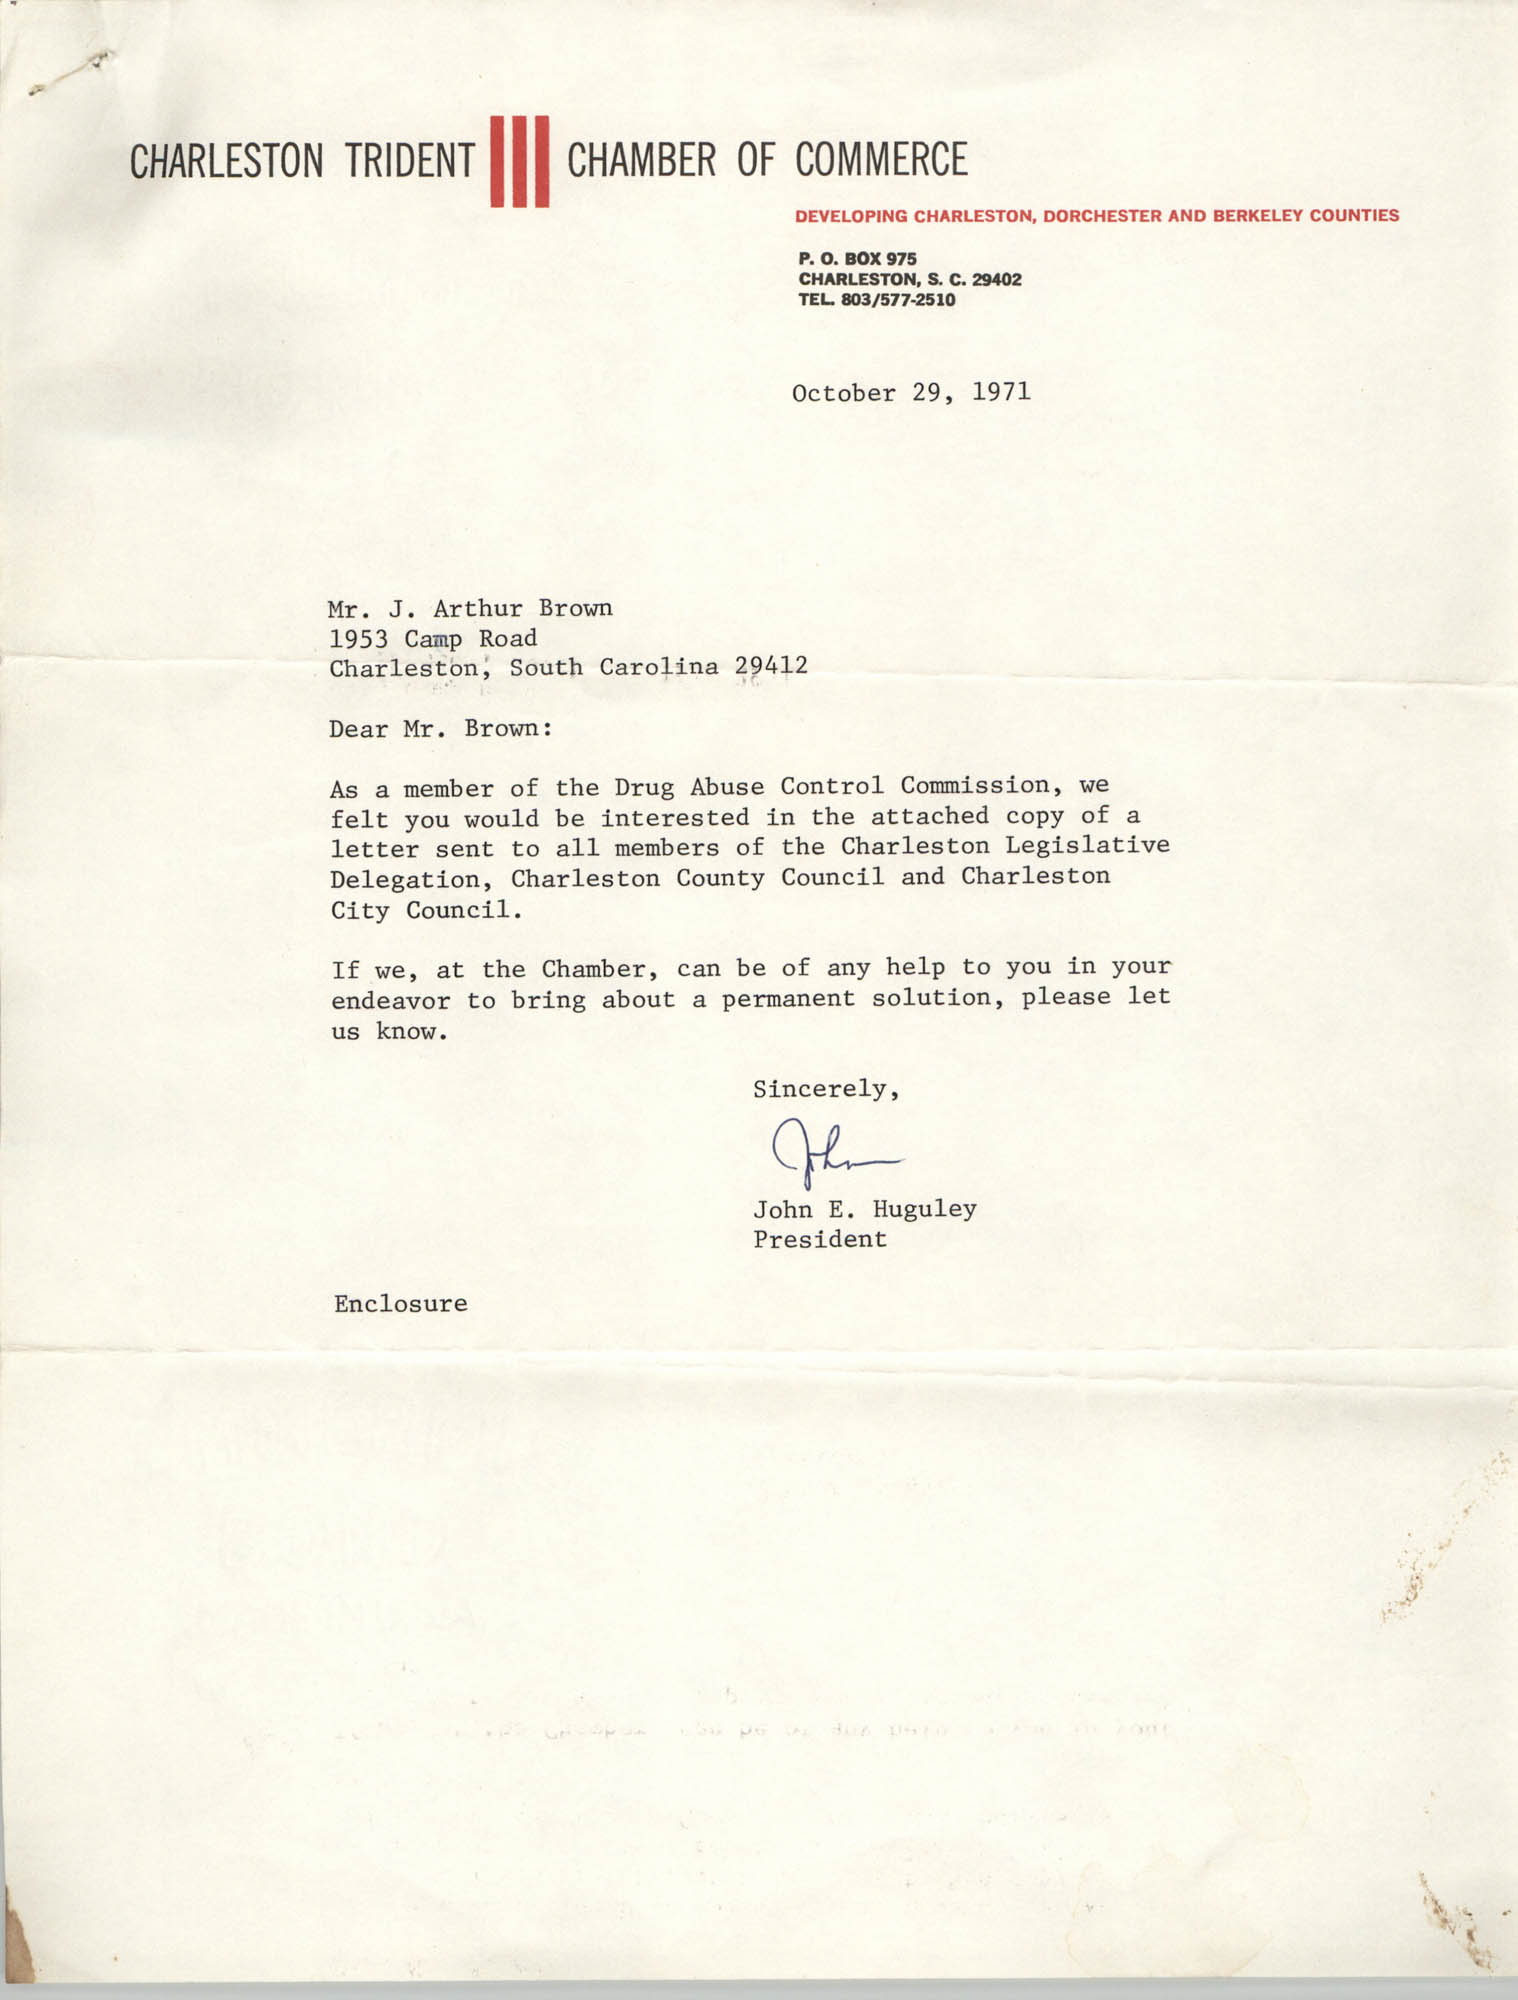 Letter from John E. Huguley to J. Arthur Brown, October 29, 1971